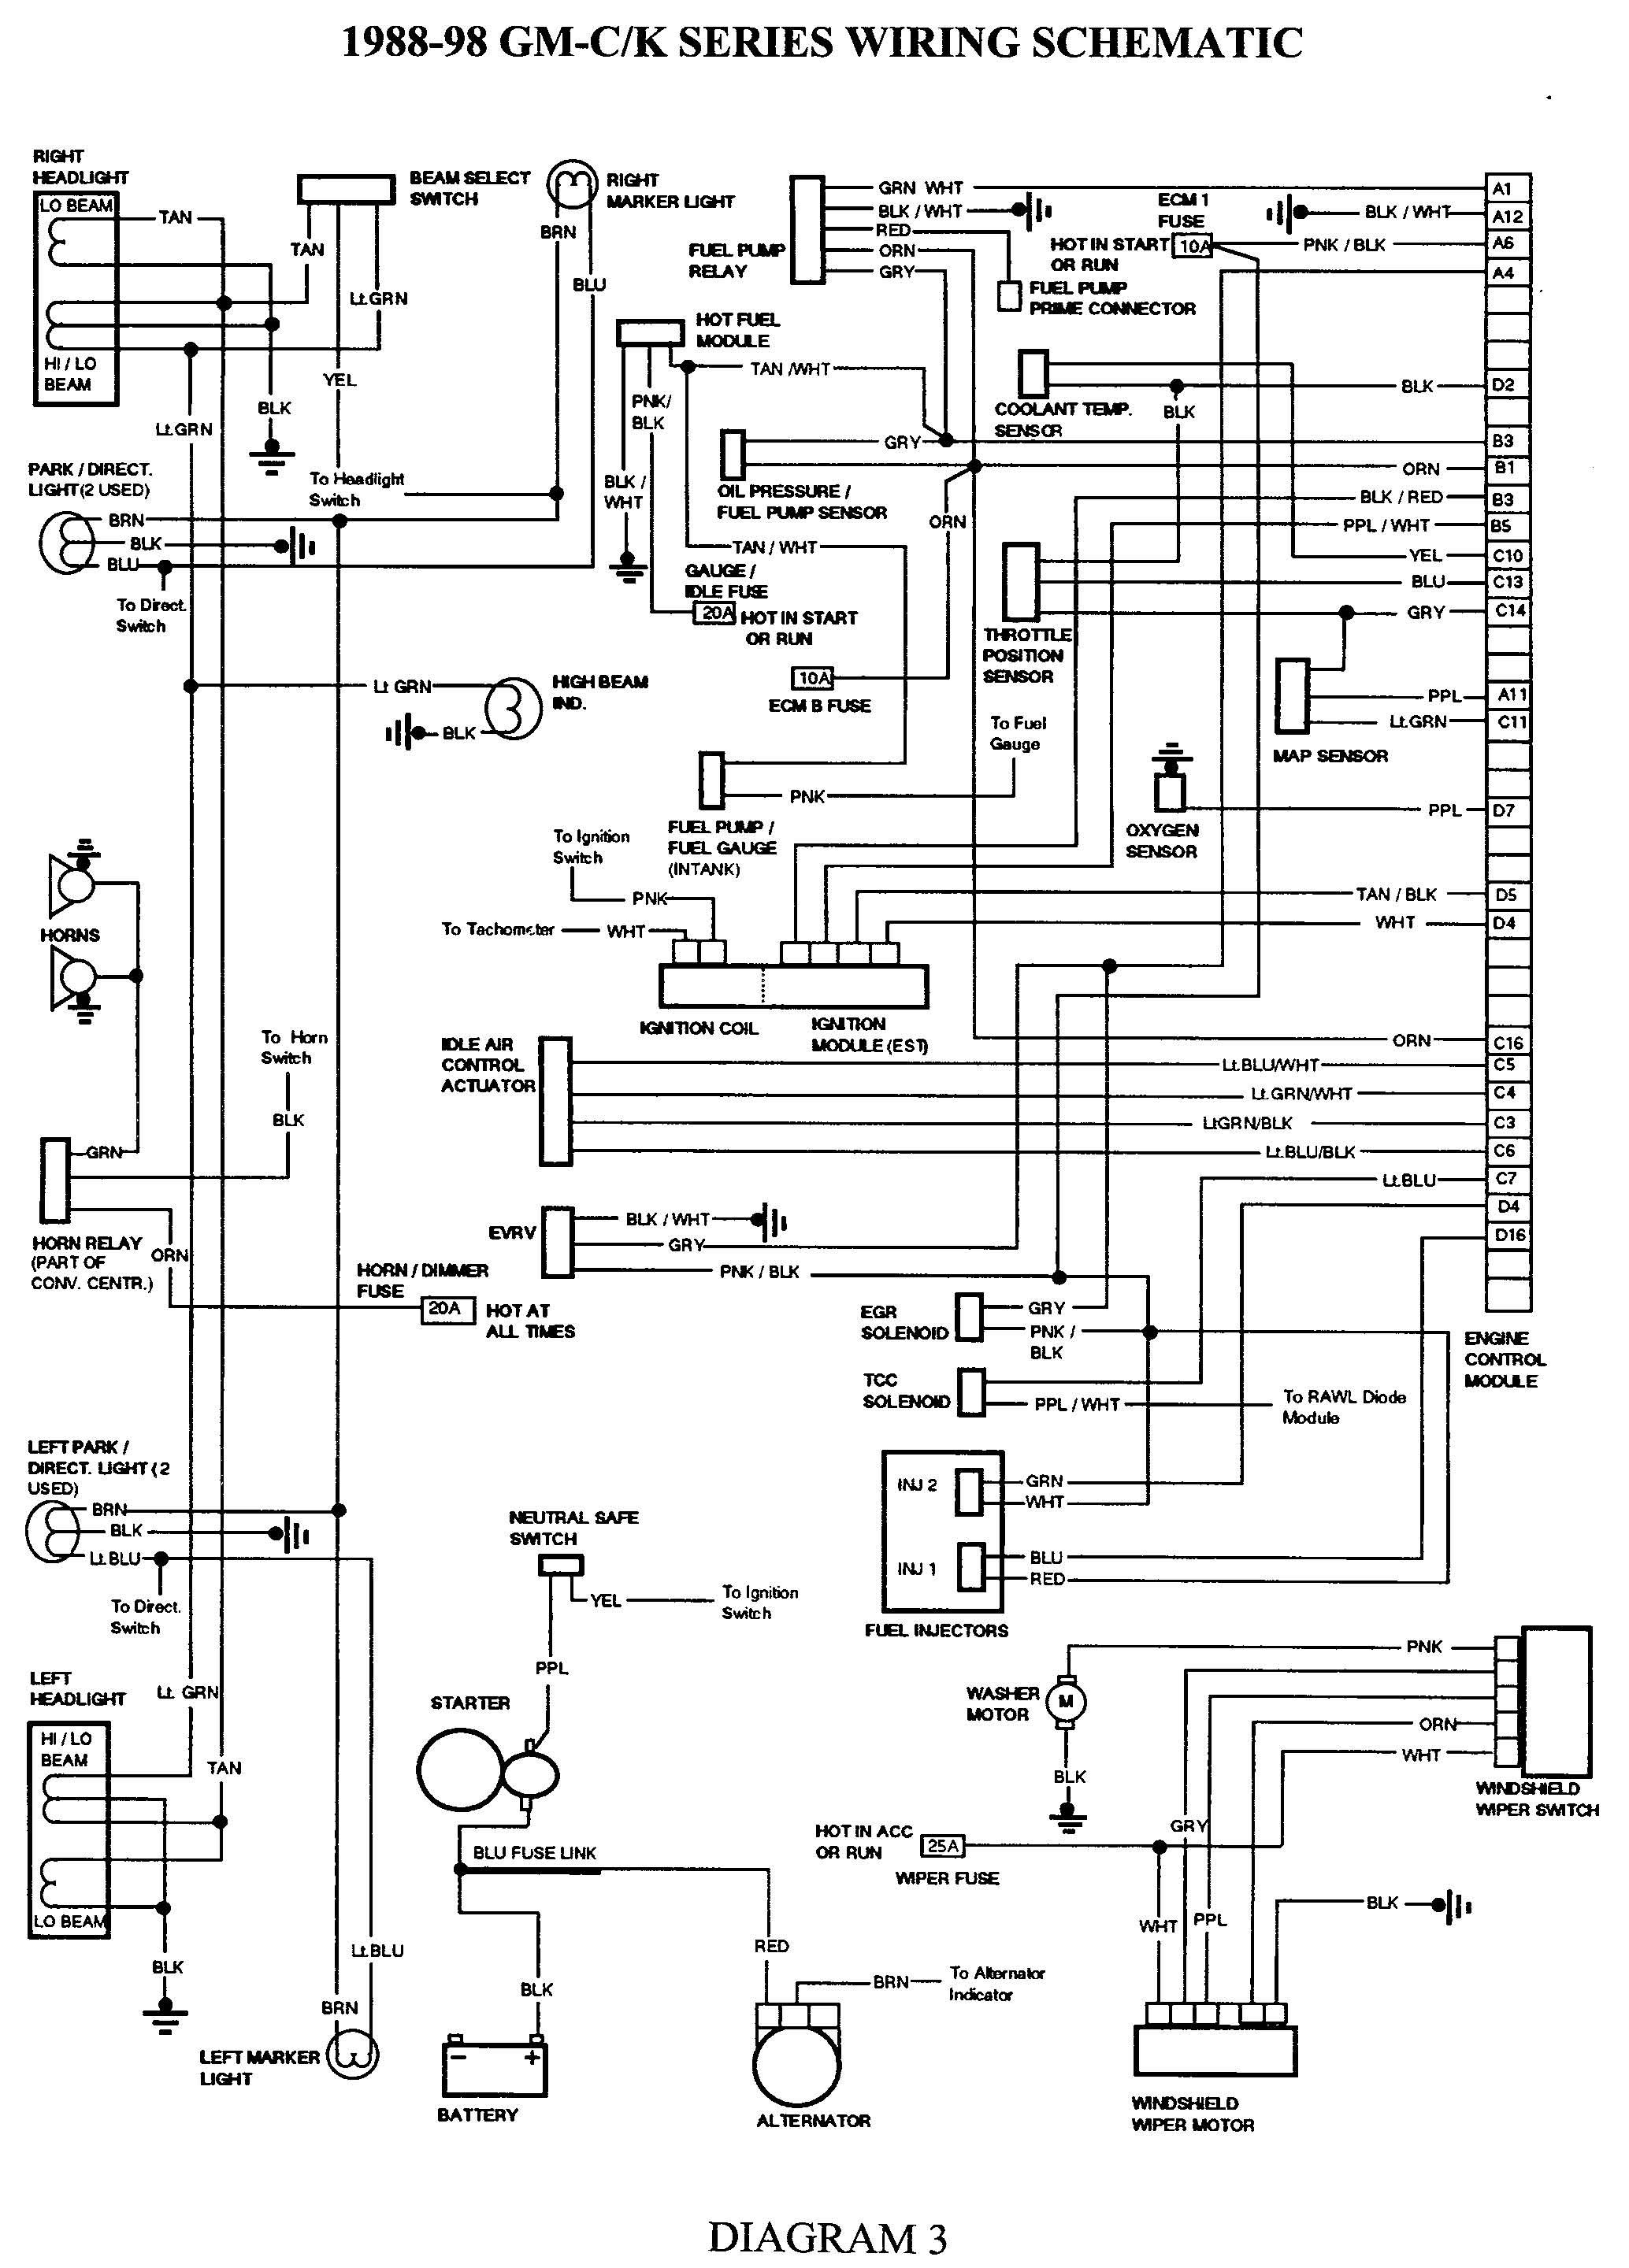 1992 Dodge B250 Wiring Diagram Schematic Archive Of Automotive Kw Wiring  Diagram Ag Wiring Diagram